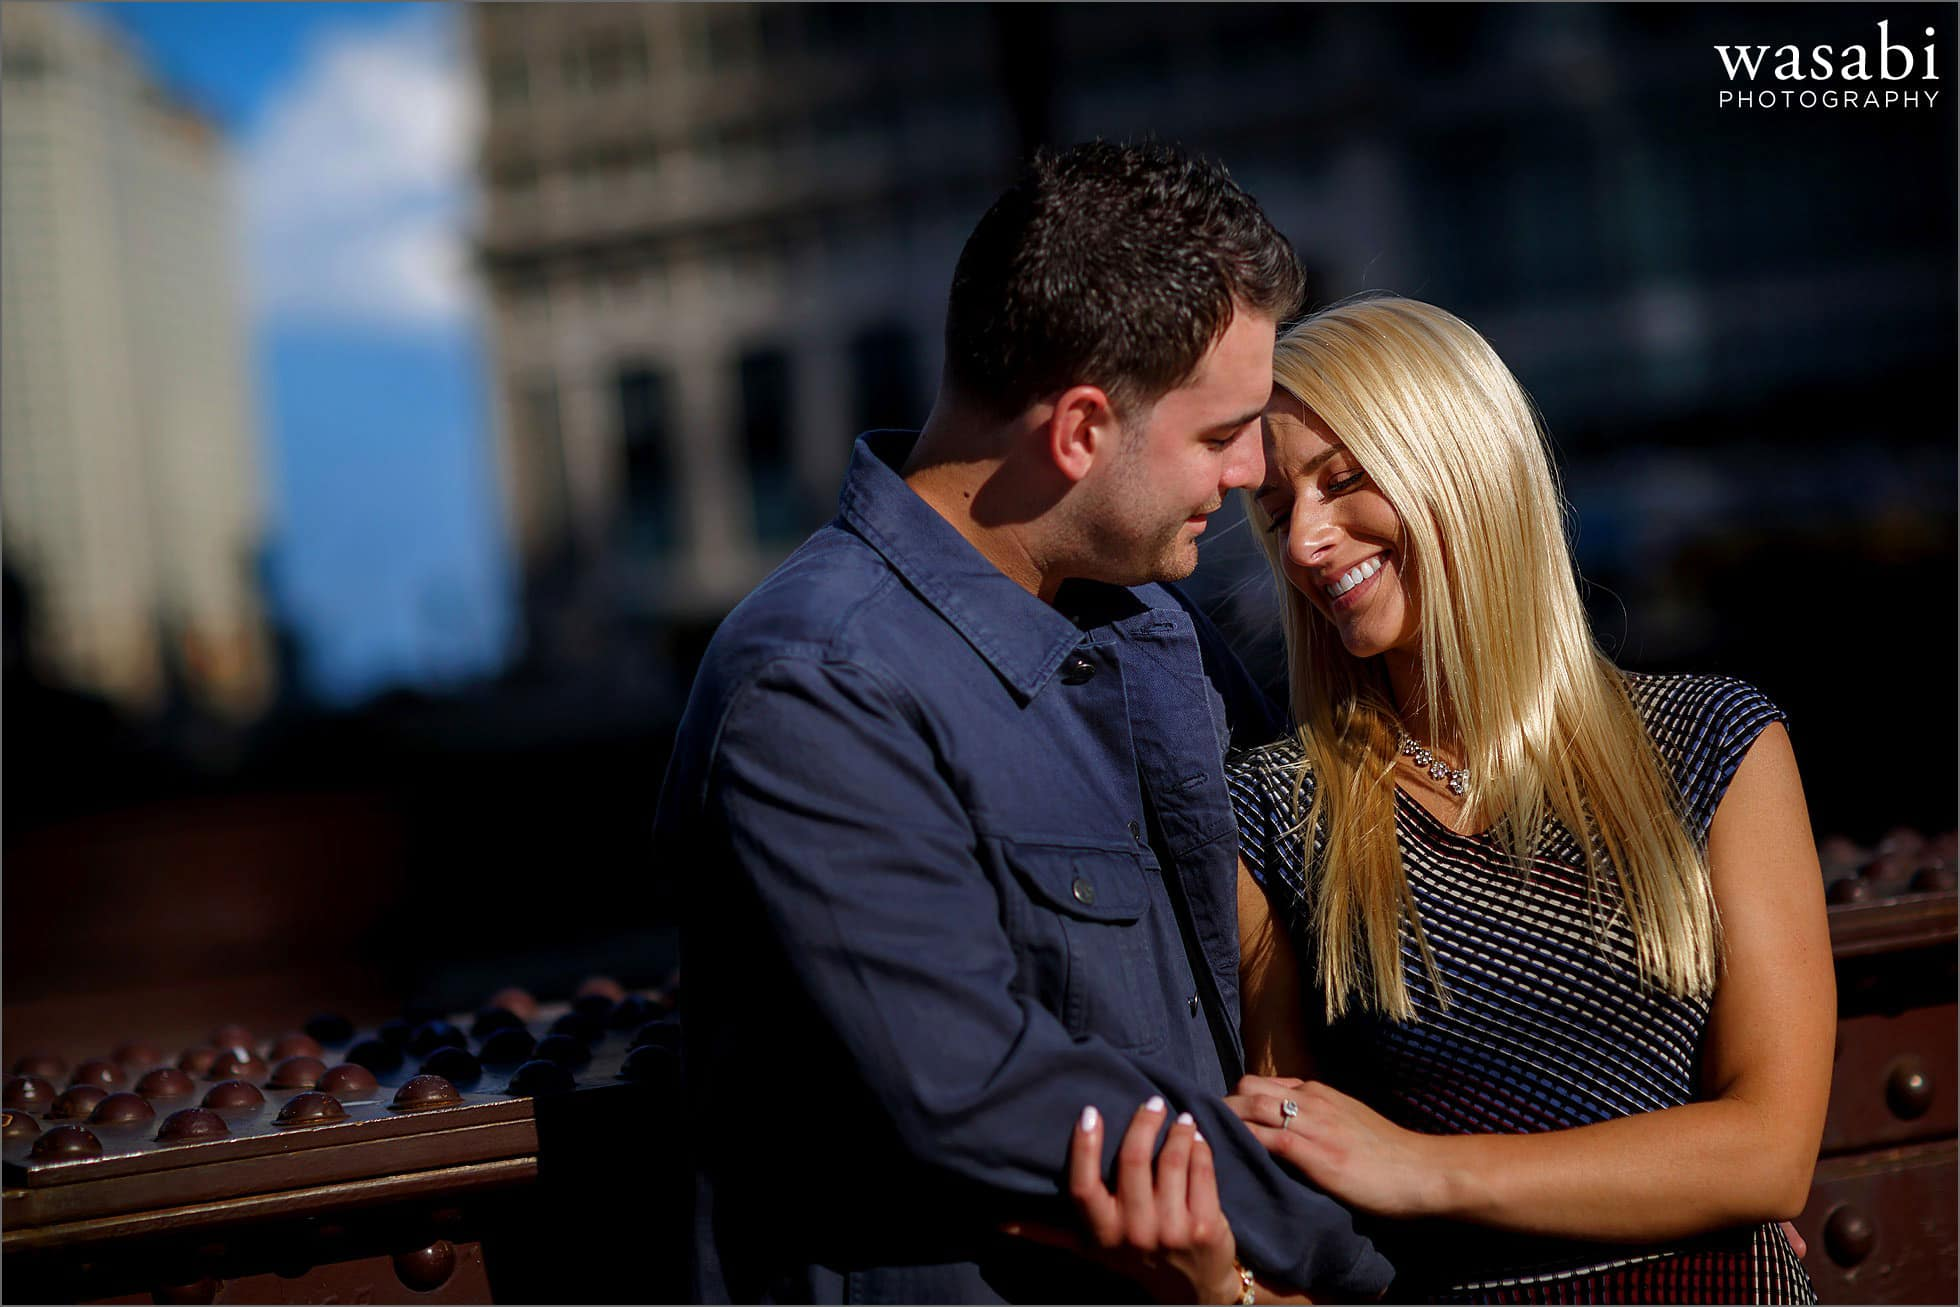 lasalle-street-bridge-engagement-photos-03